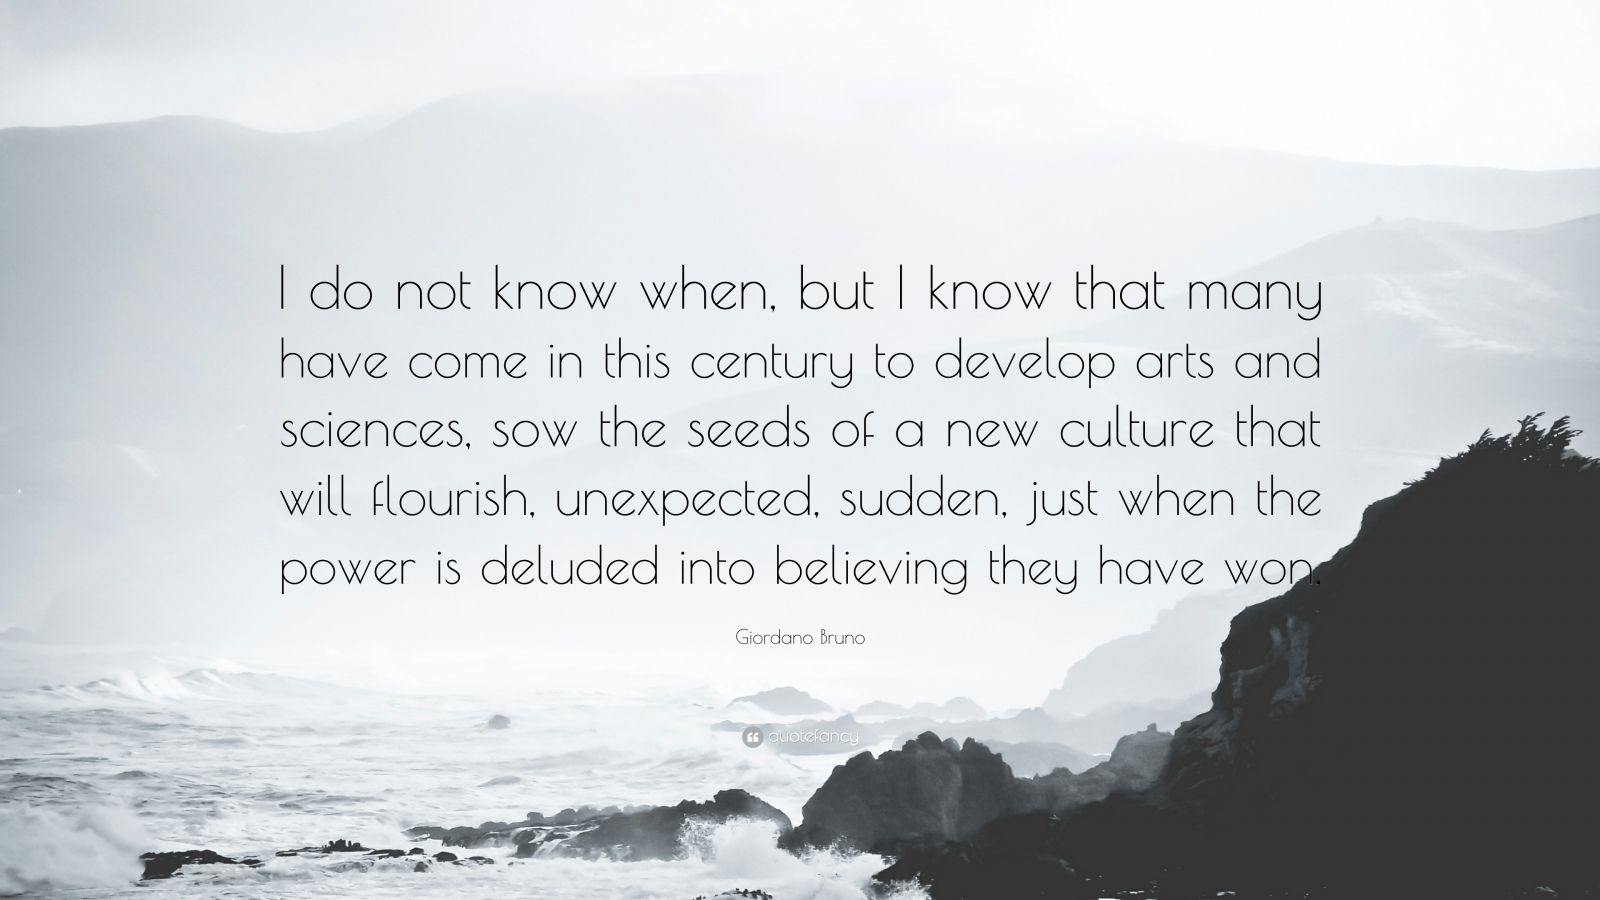 """Giordano Bruno Quote: """"I do not know when, but I know that many have come in this century to develop arts and sciences, sow the seeds of a new culture that will flourish, unexpected, sudden, just when the power is deluded into believing they have won."""""""